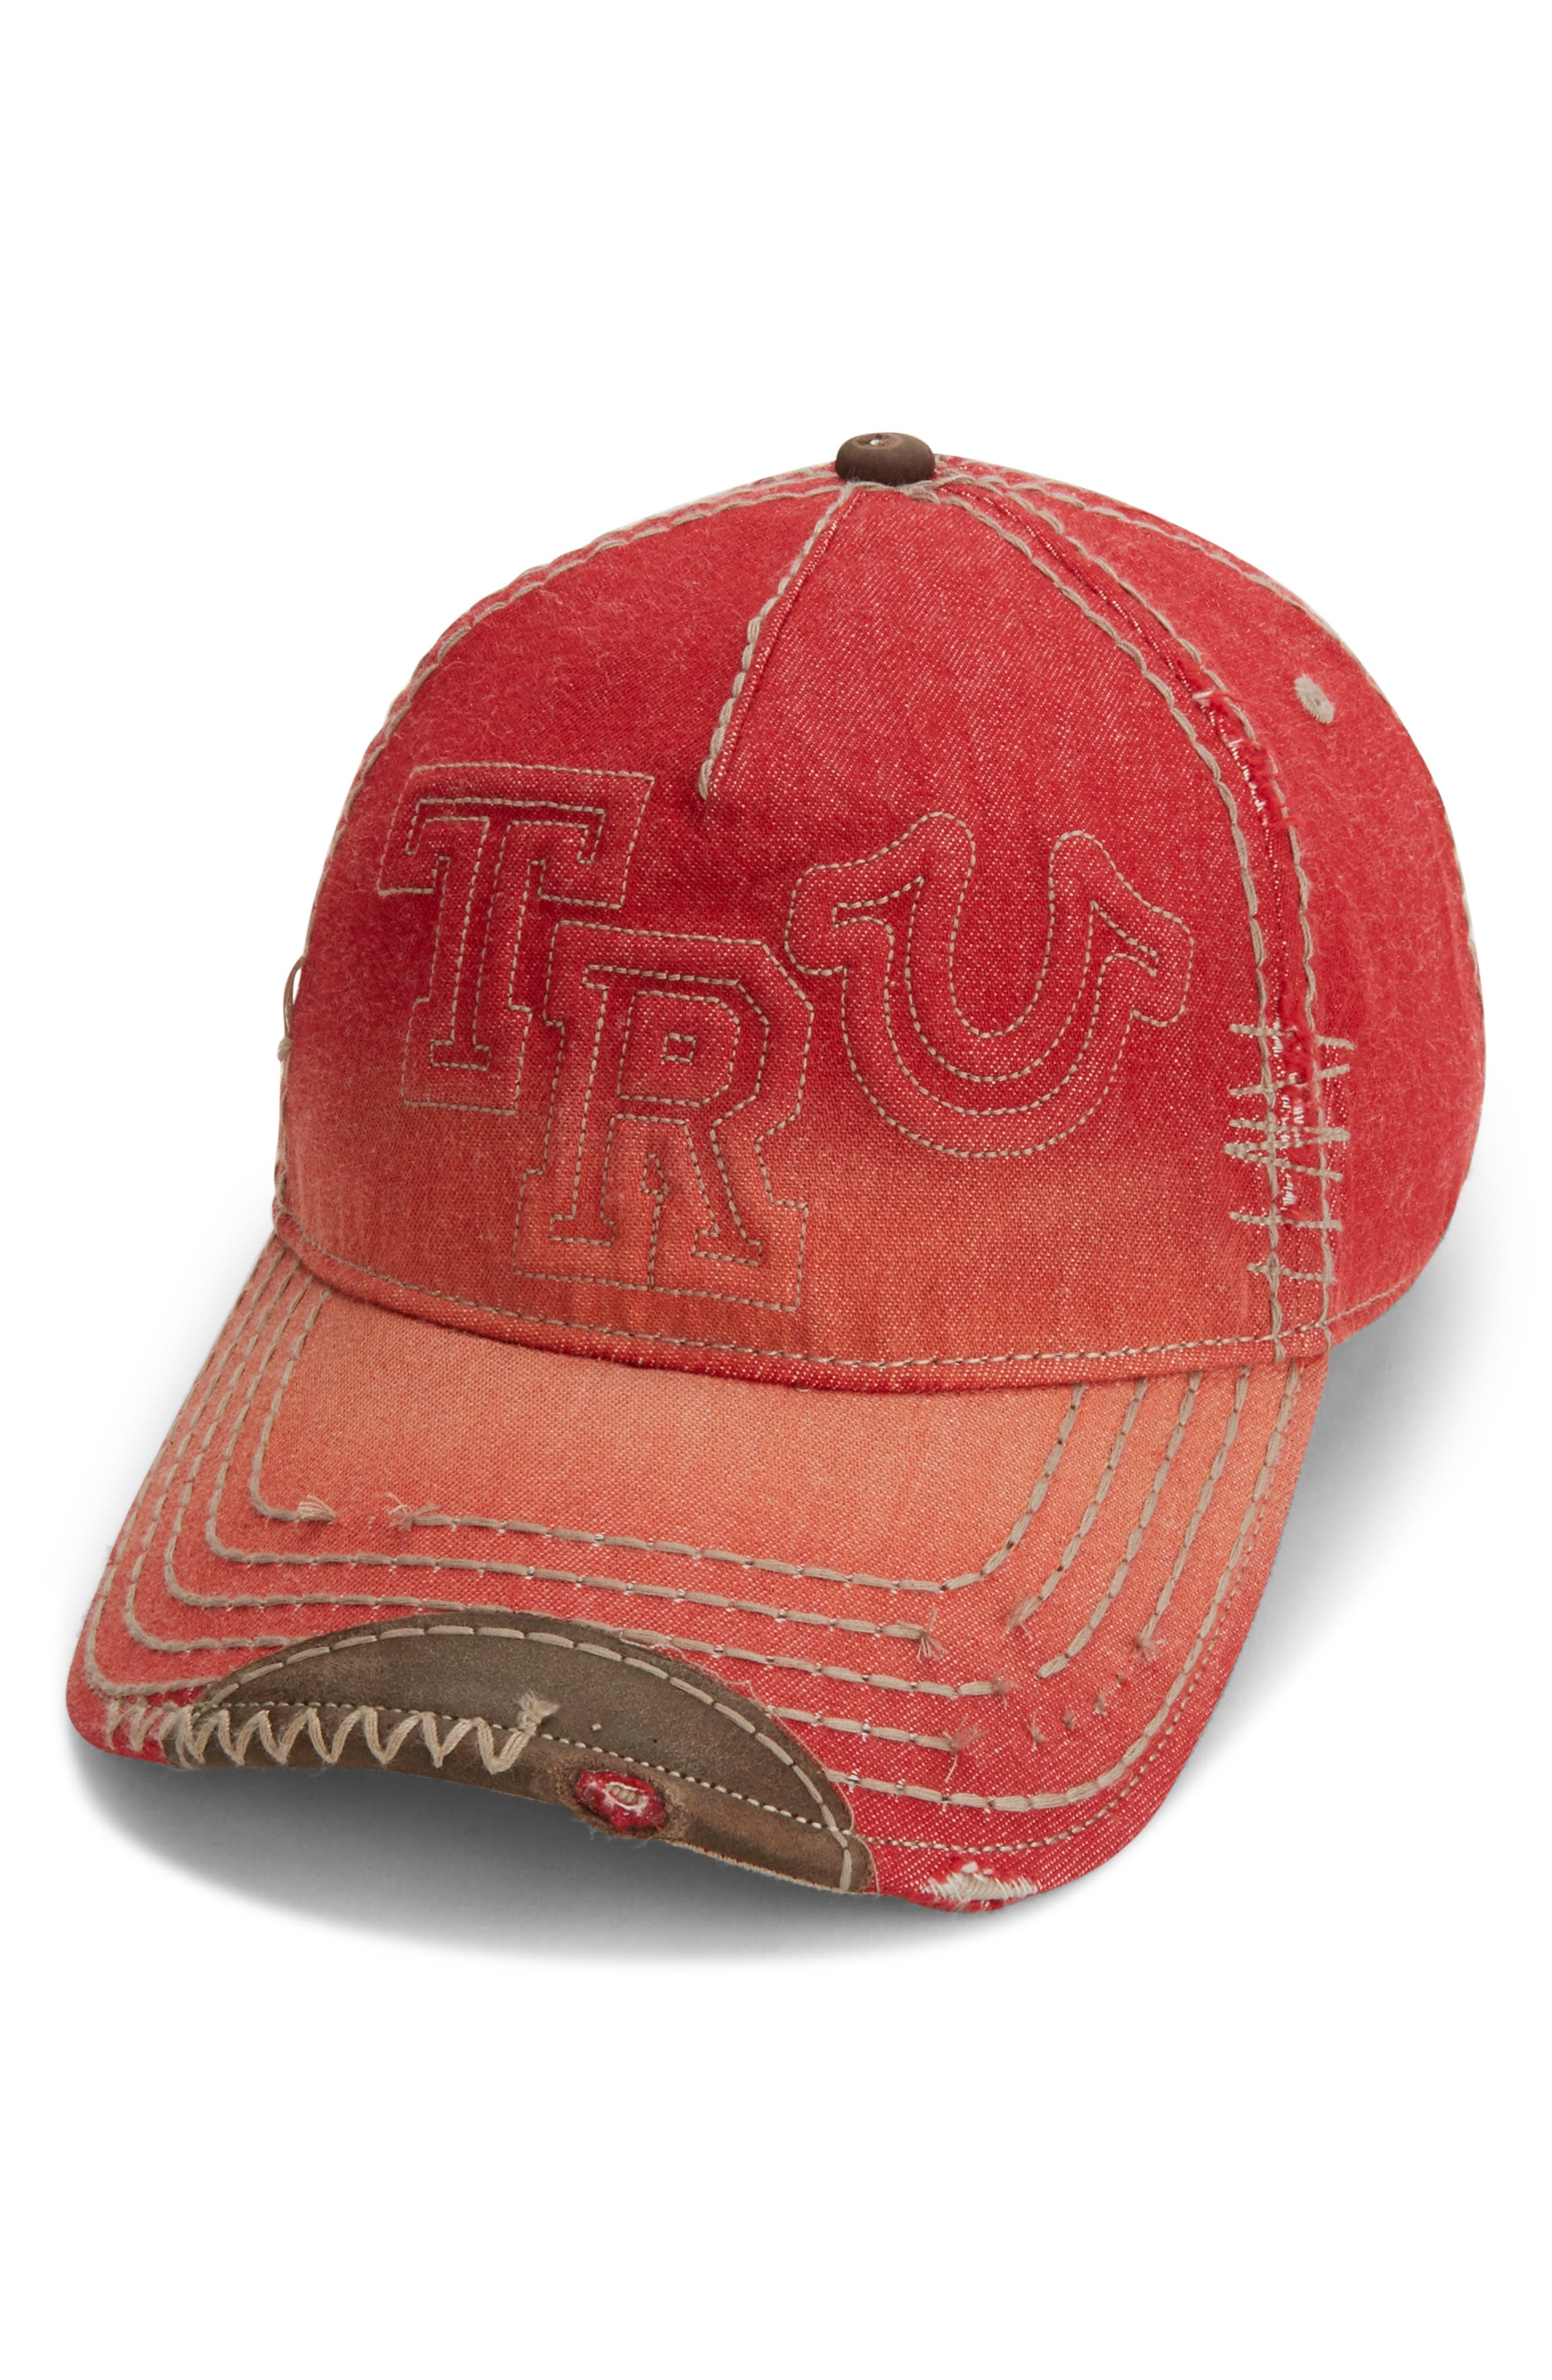 True Religion Brand Jeans Denim Baseball Cap